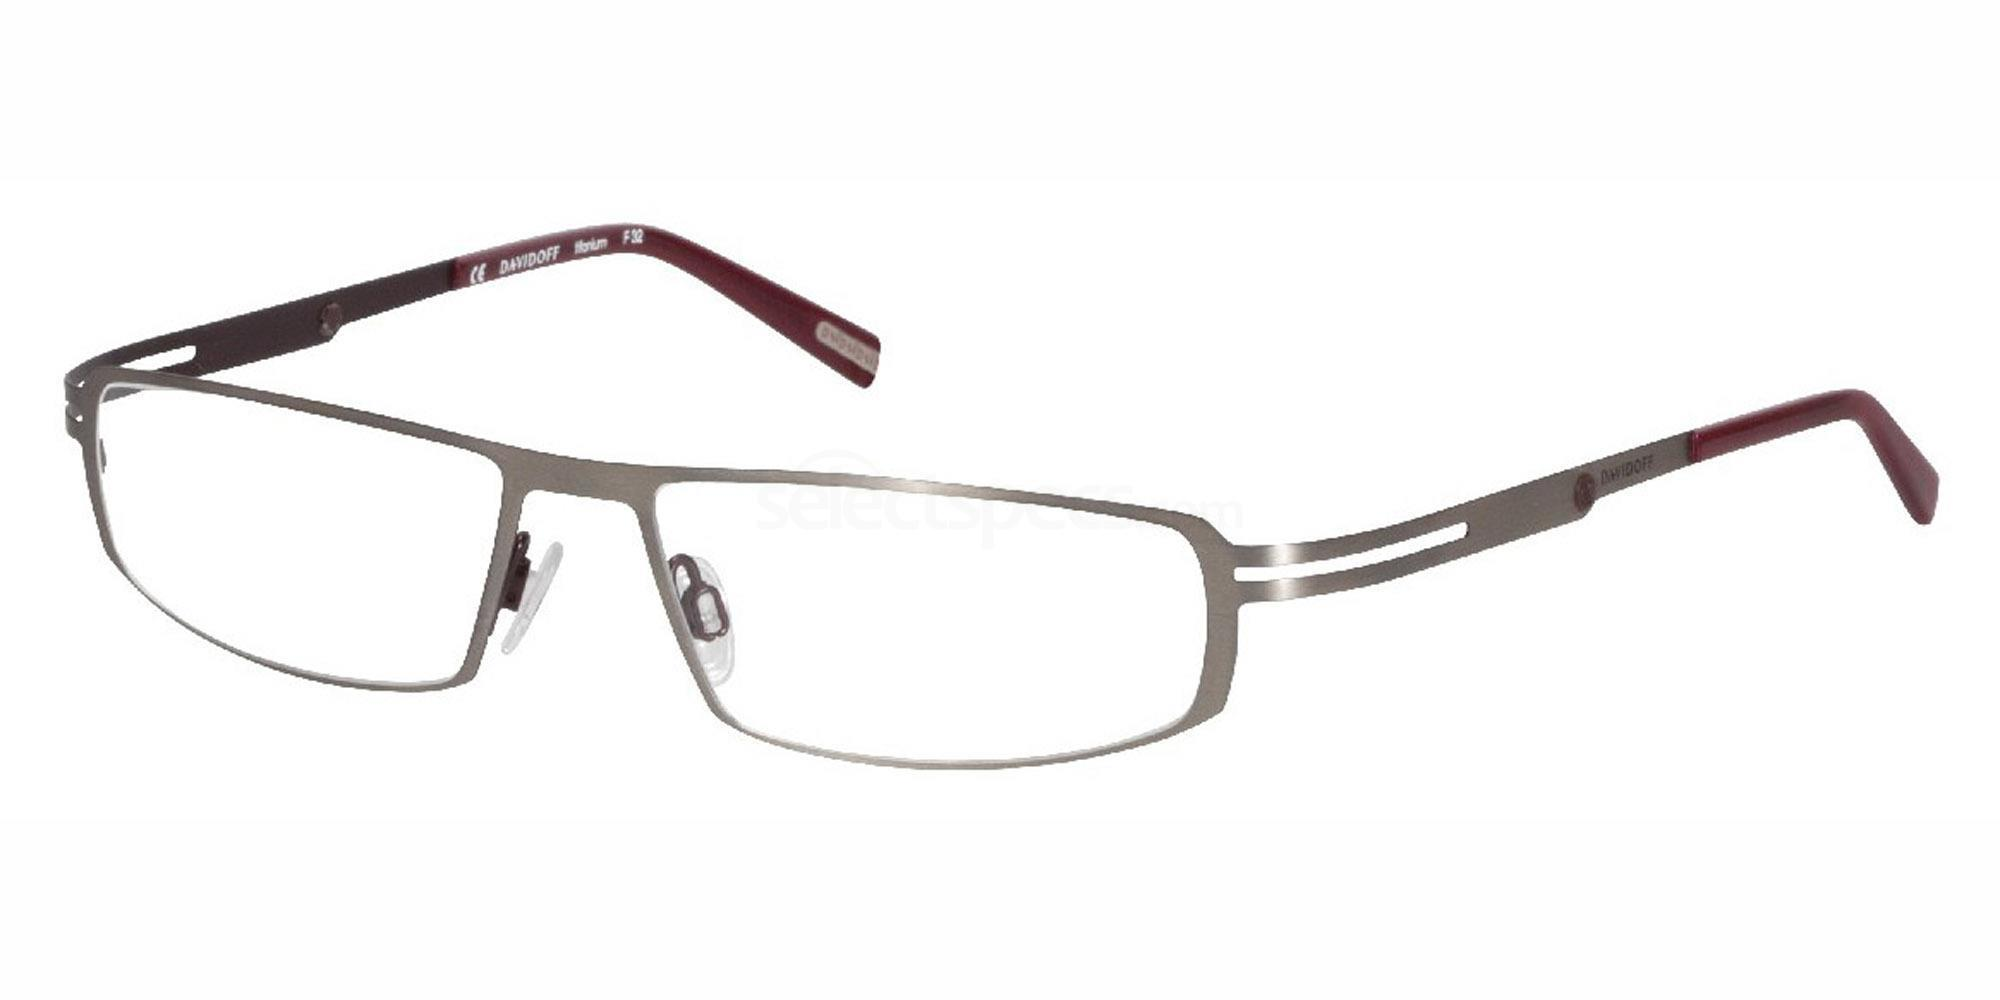 515 95087 Glasses, DAVIDOFF Eyewear